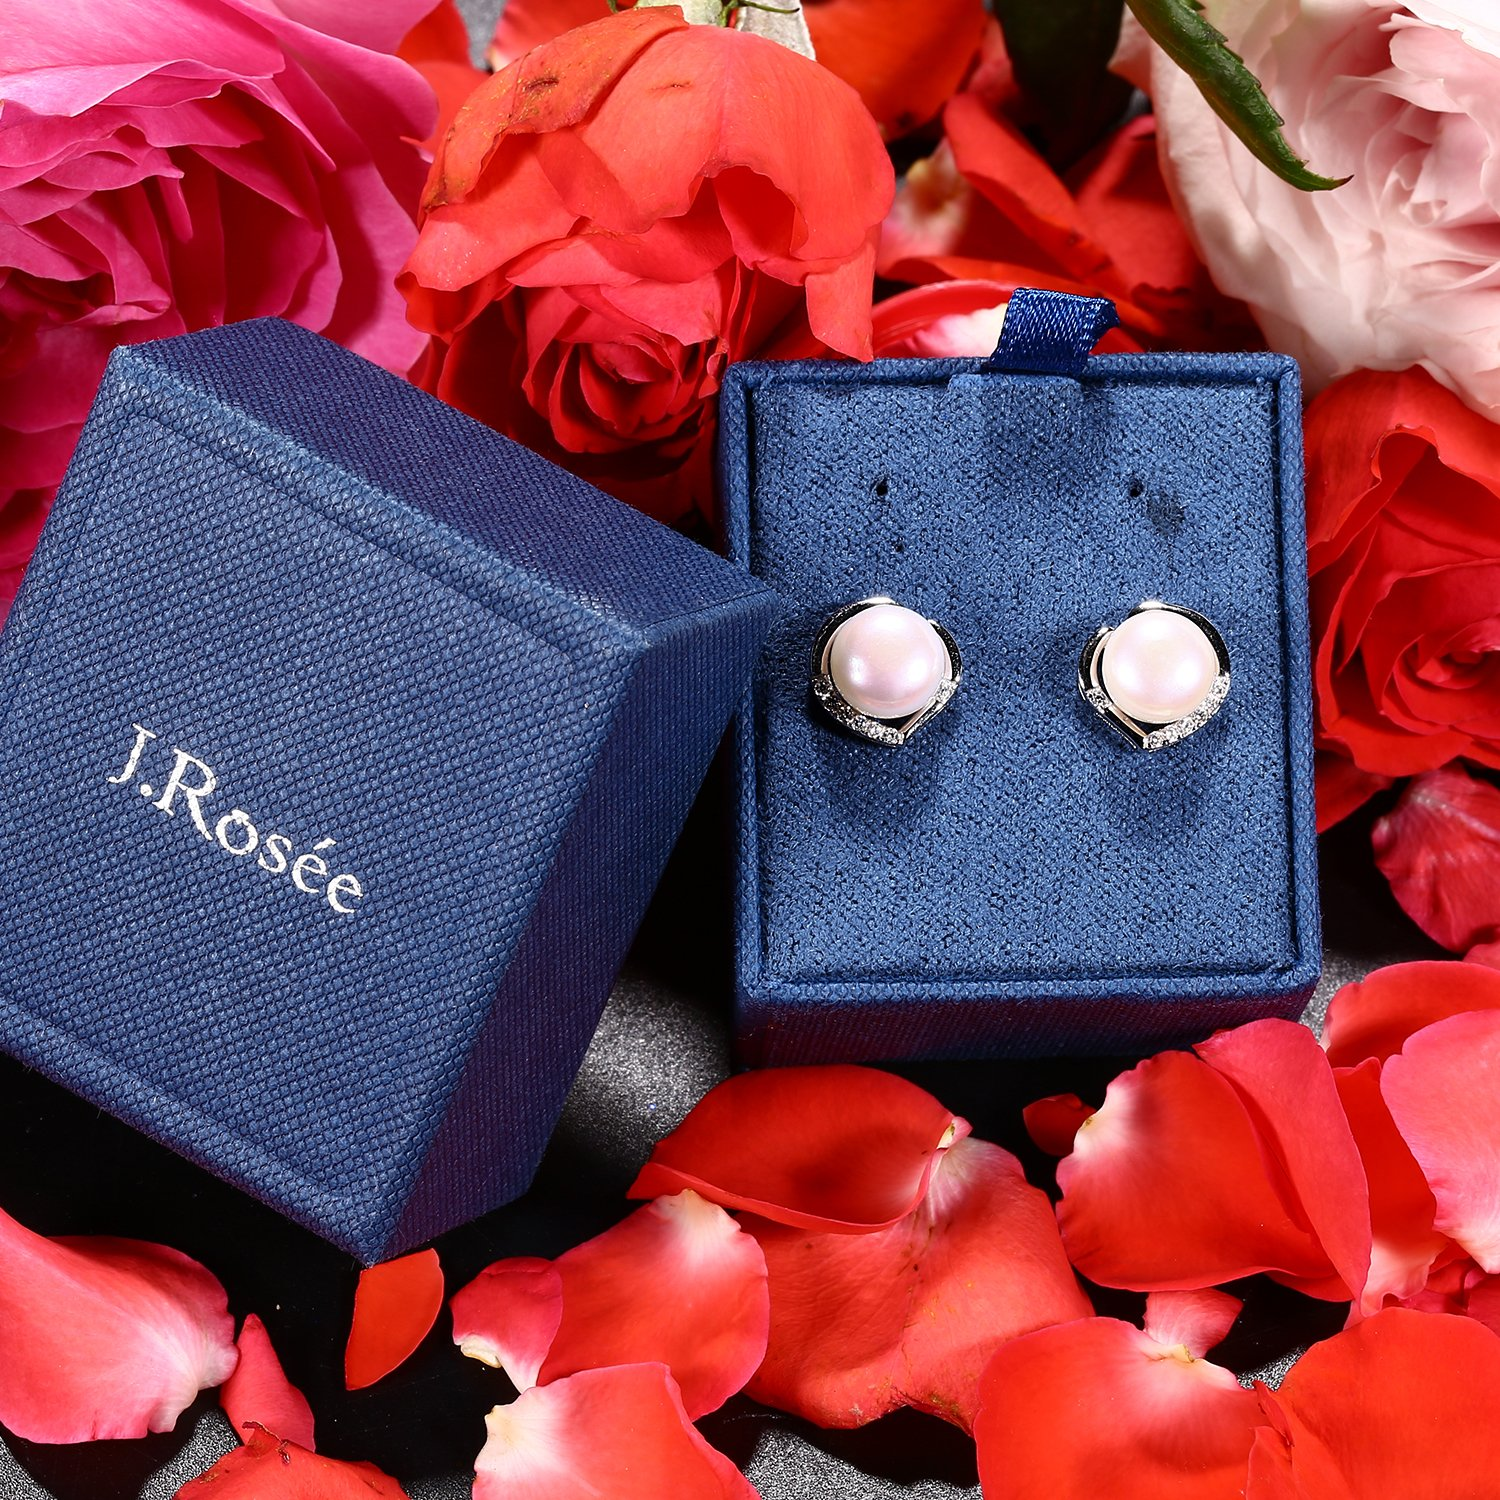 J.Rosée Freshwater Cultured Pearl Earrings, Stud Earrings with 925 Sterling Silver and 5A Cubic Zirconia, Jewelry Gifts for Women Girls by J.Rosée (Image #9)